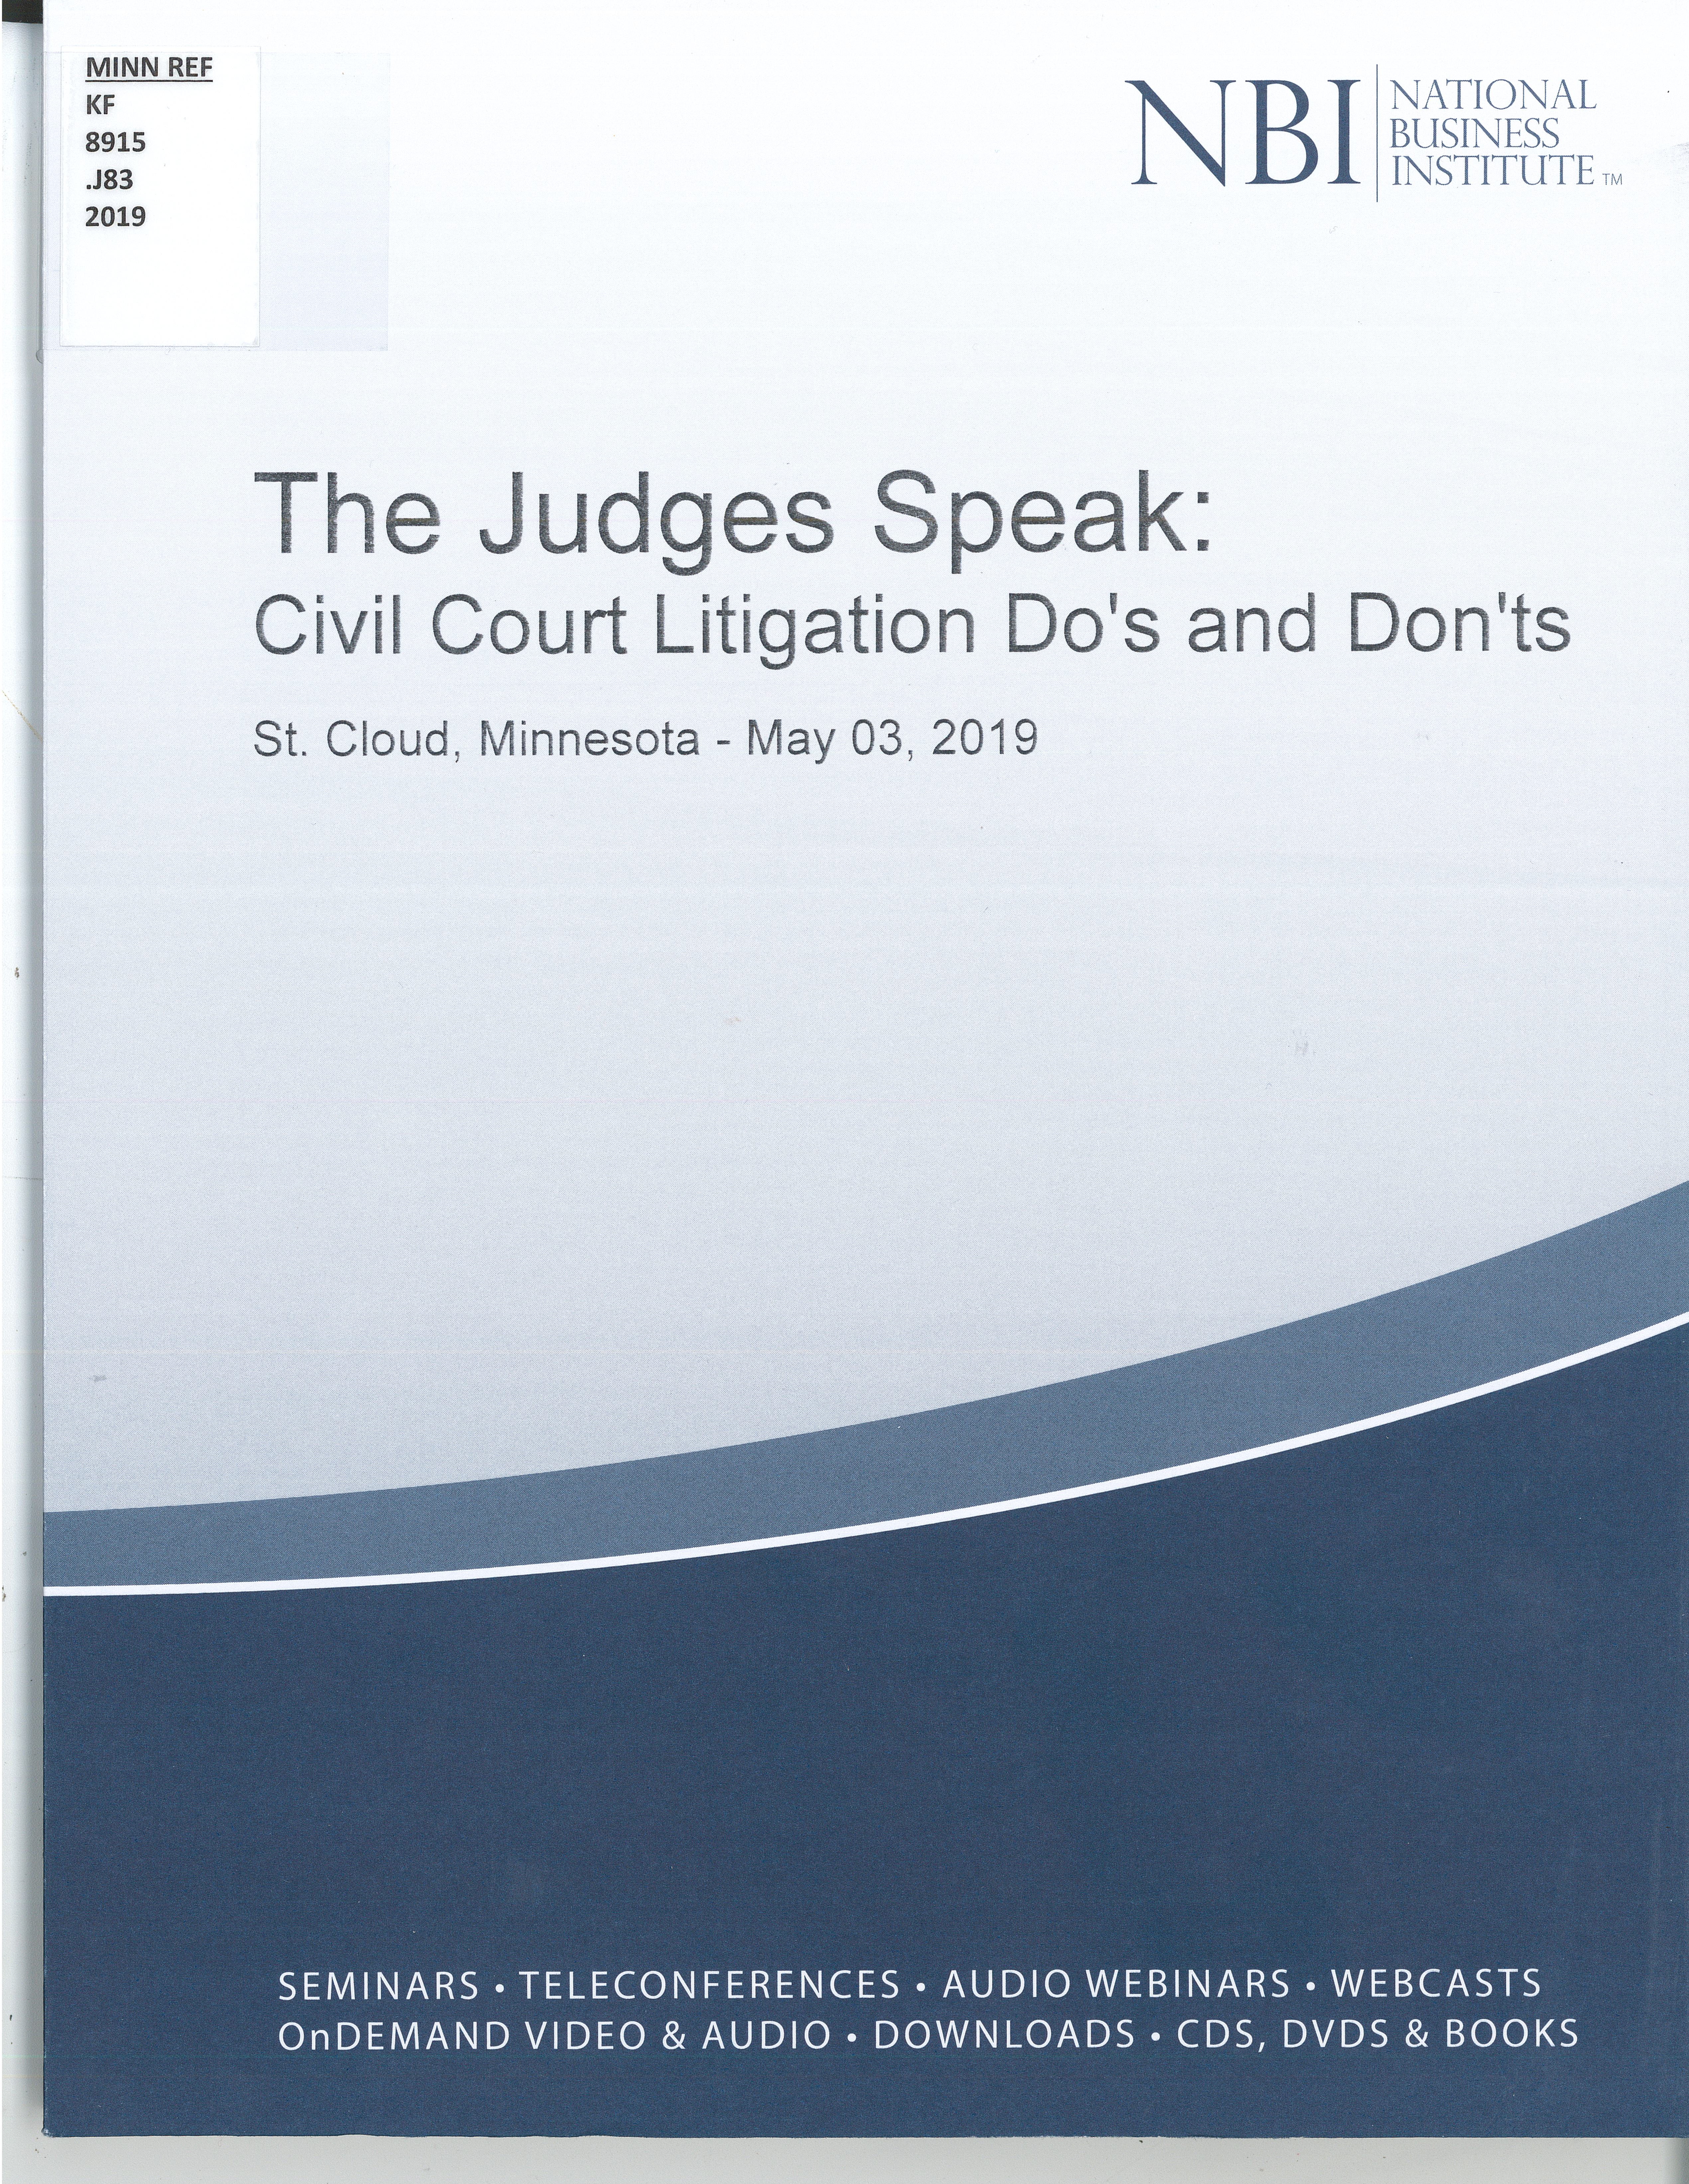 The Judges Speak